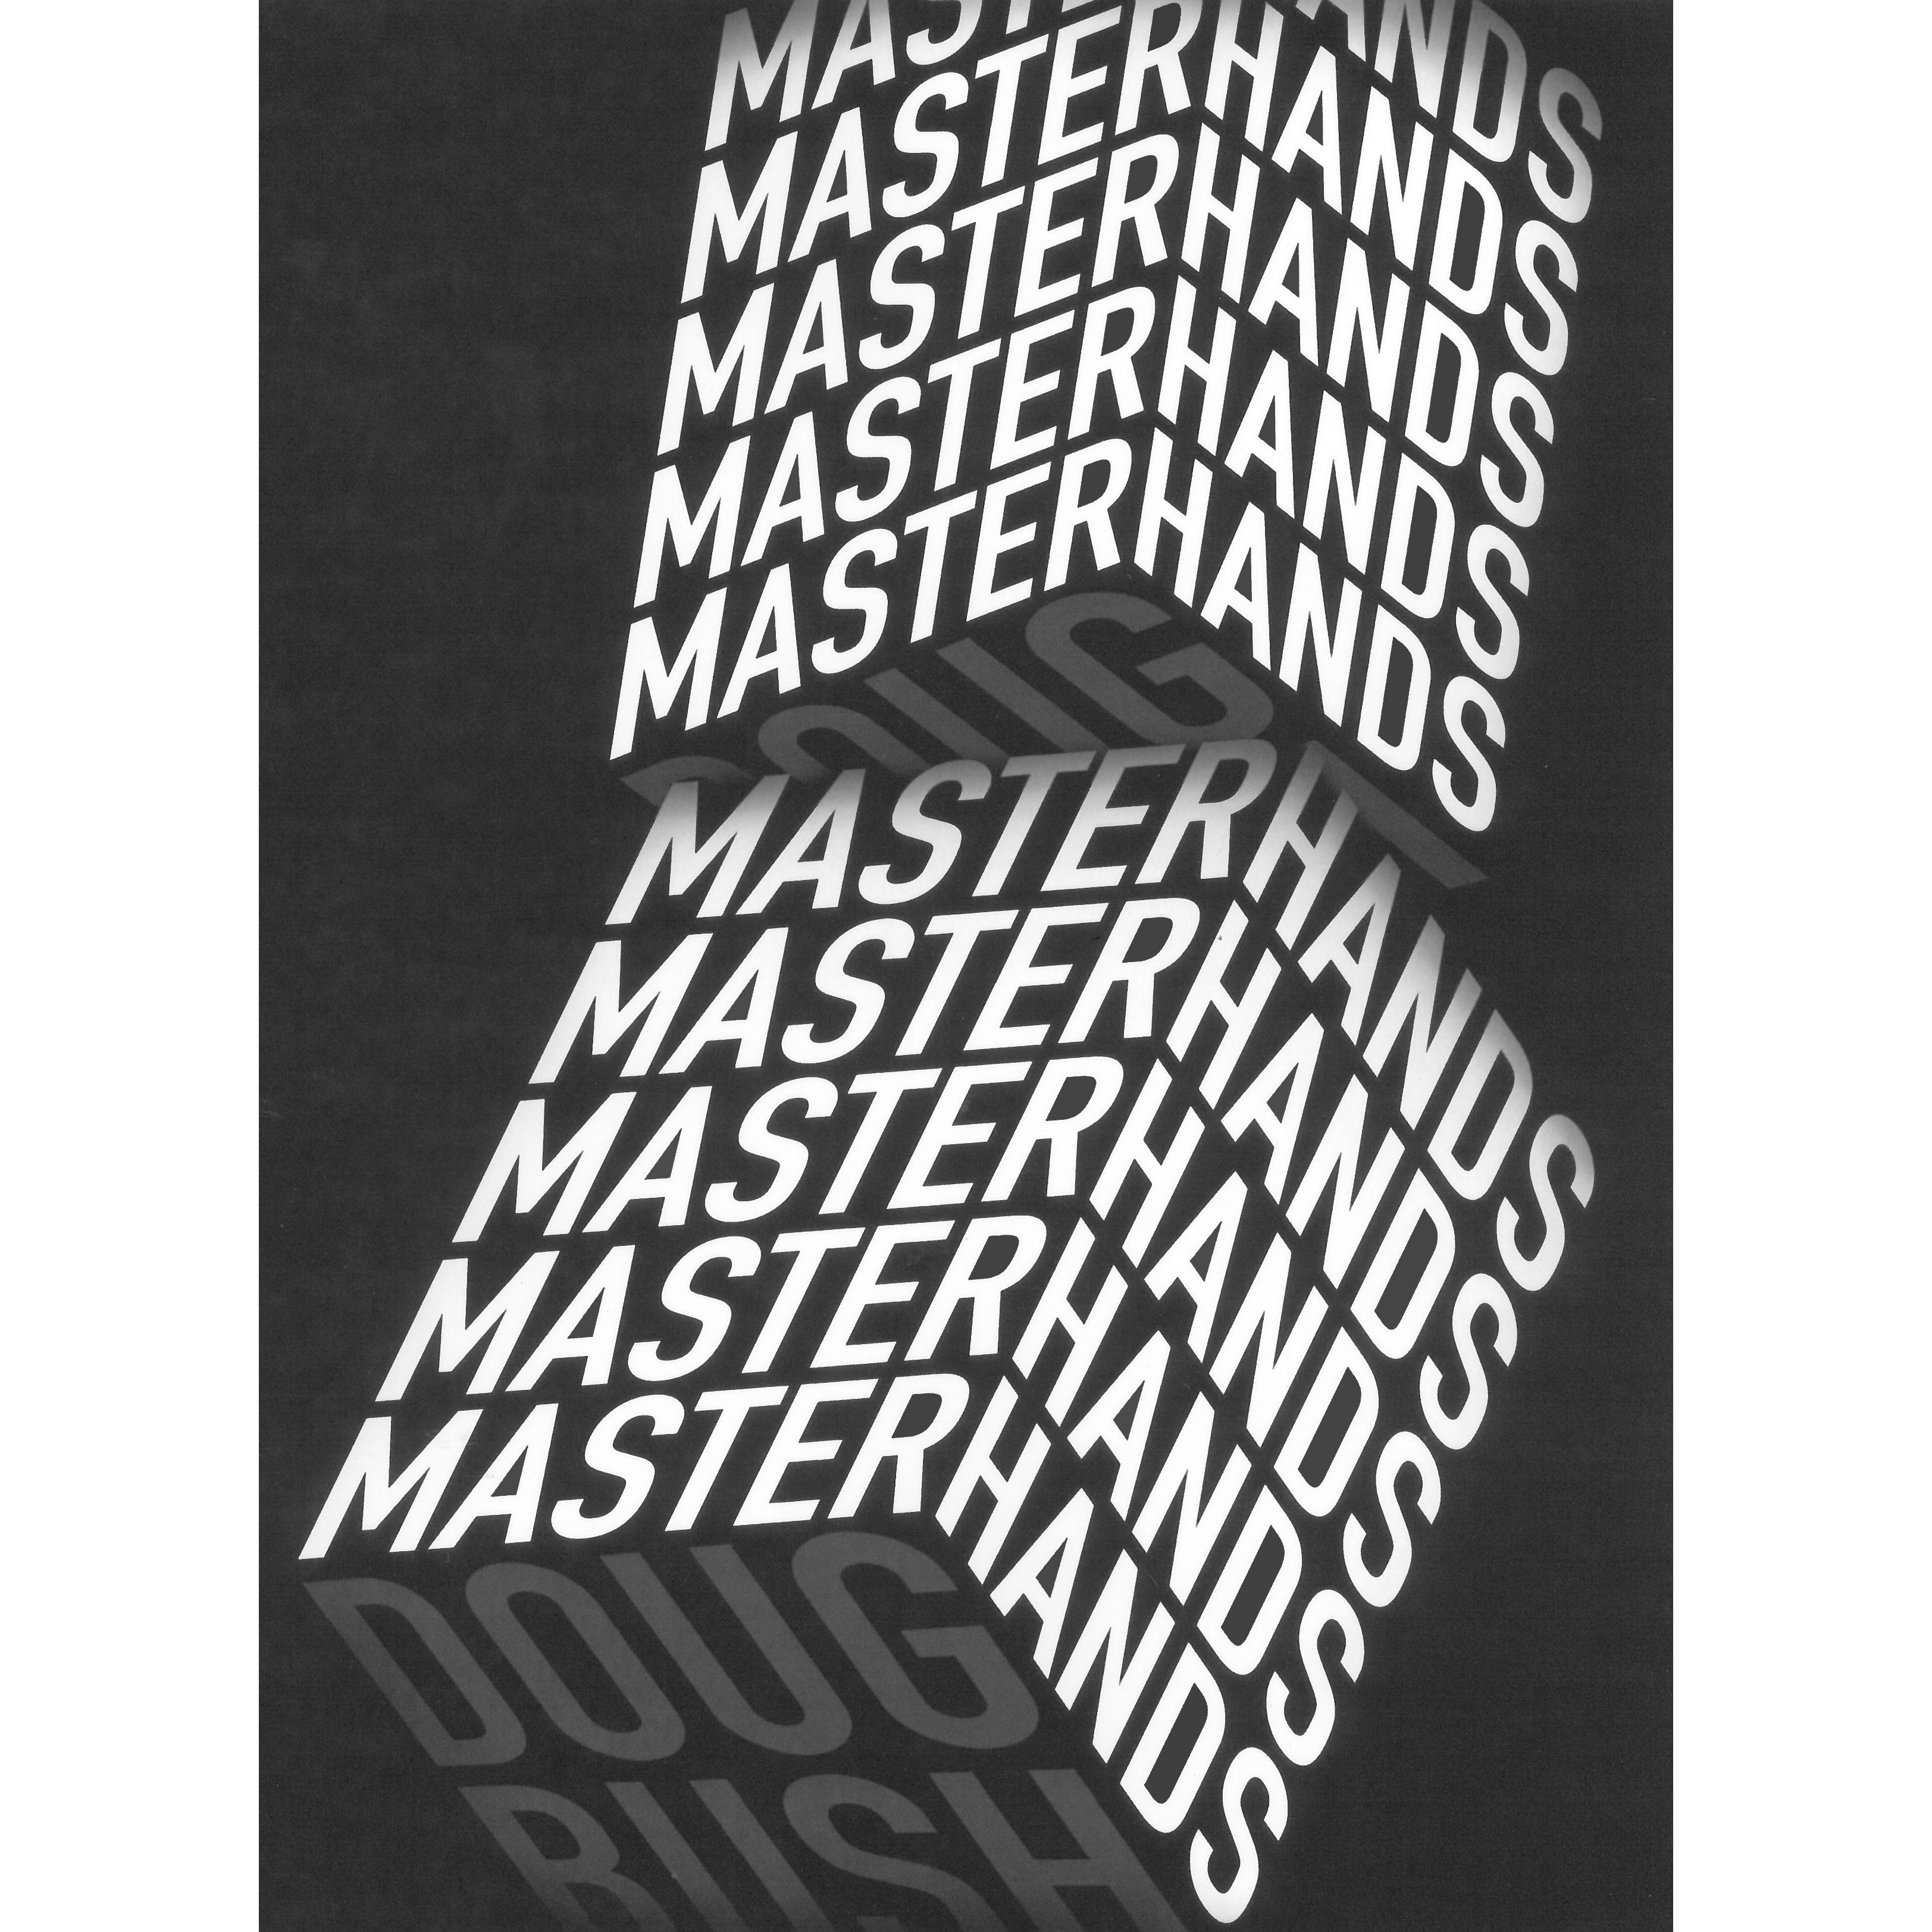 Master Hands by Doug Bush